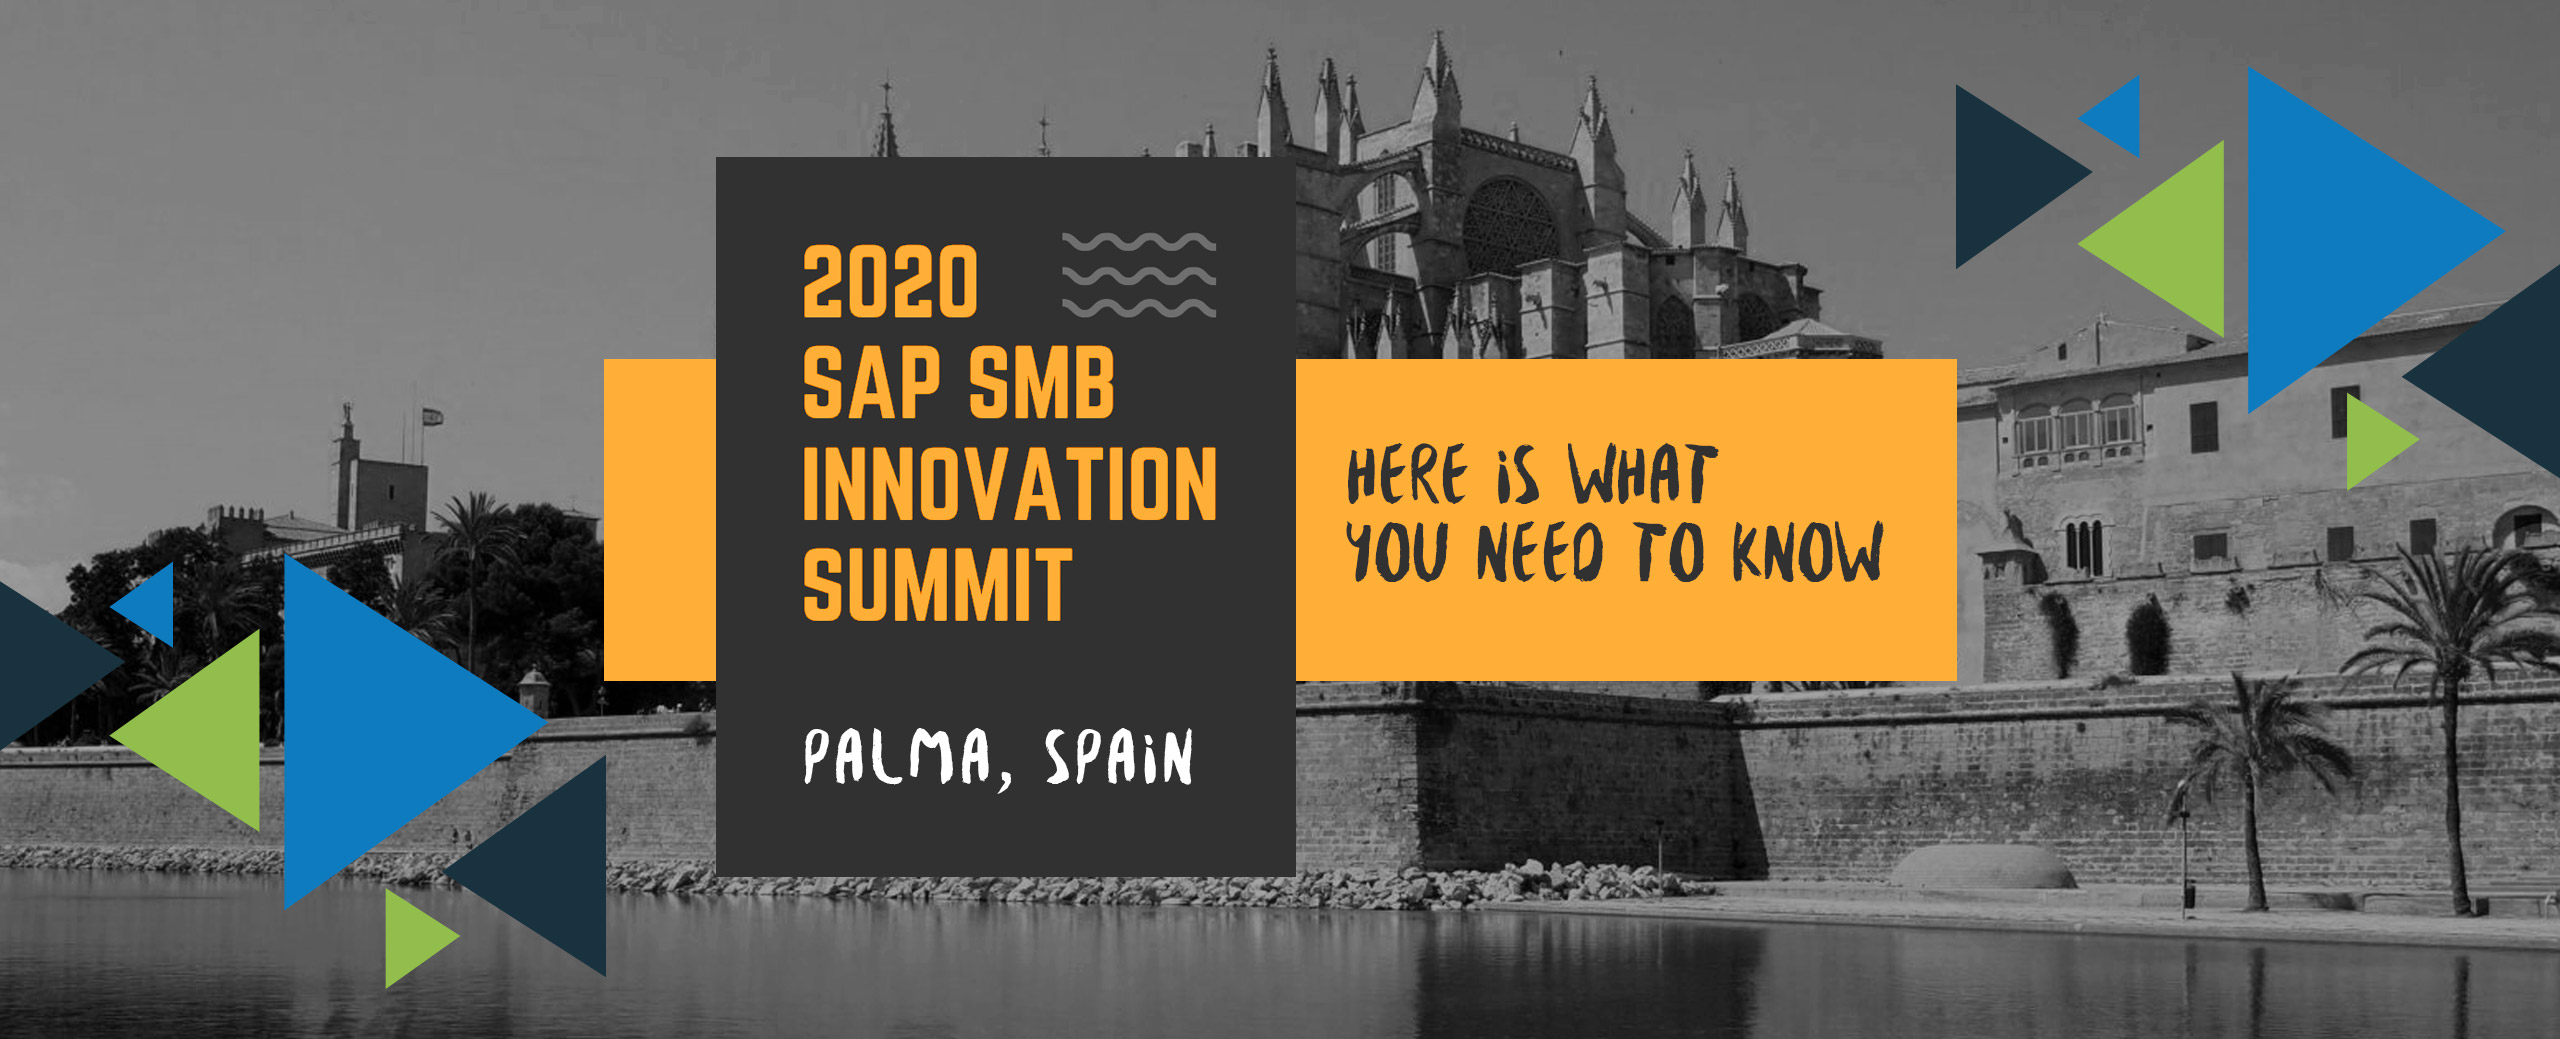 sap-smb-summit-what-you-need-to-know